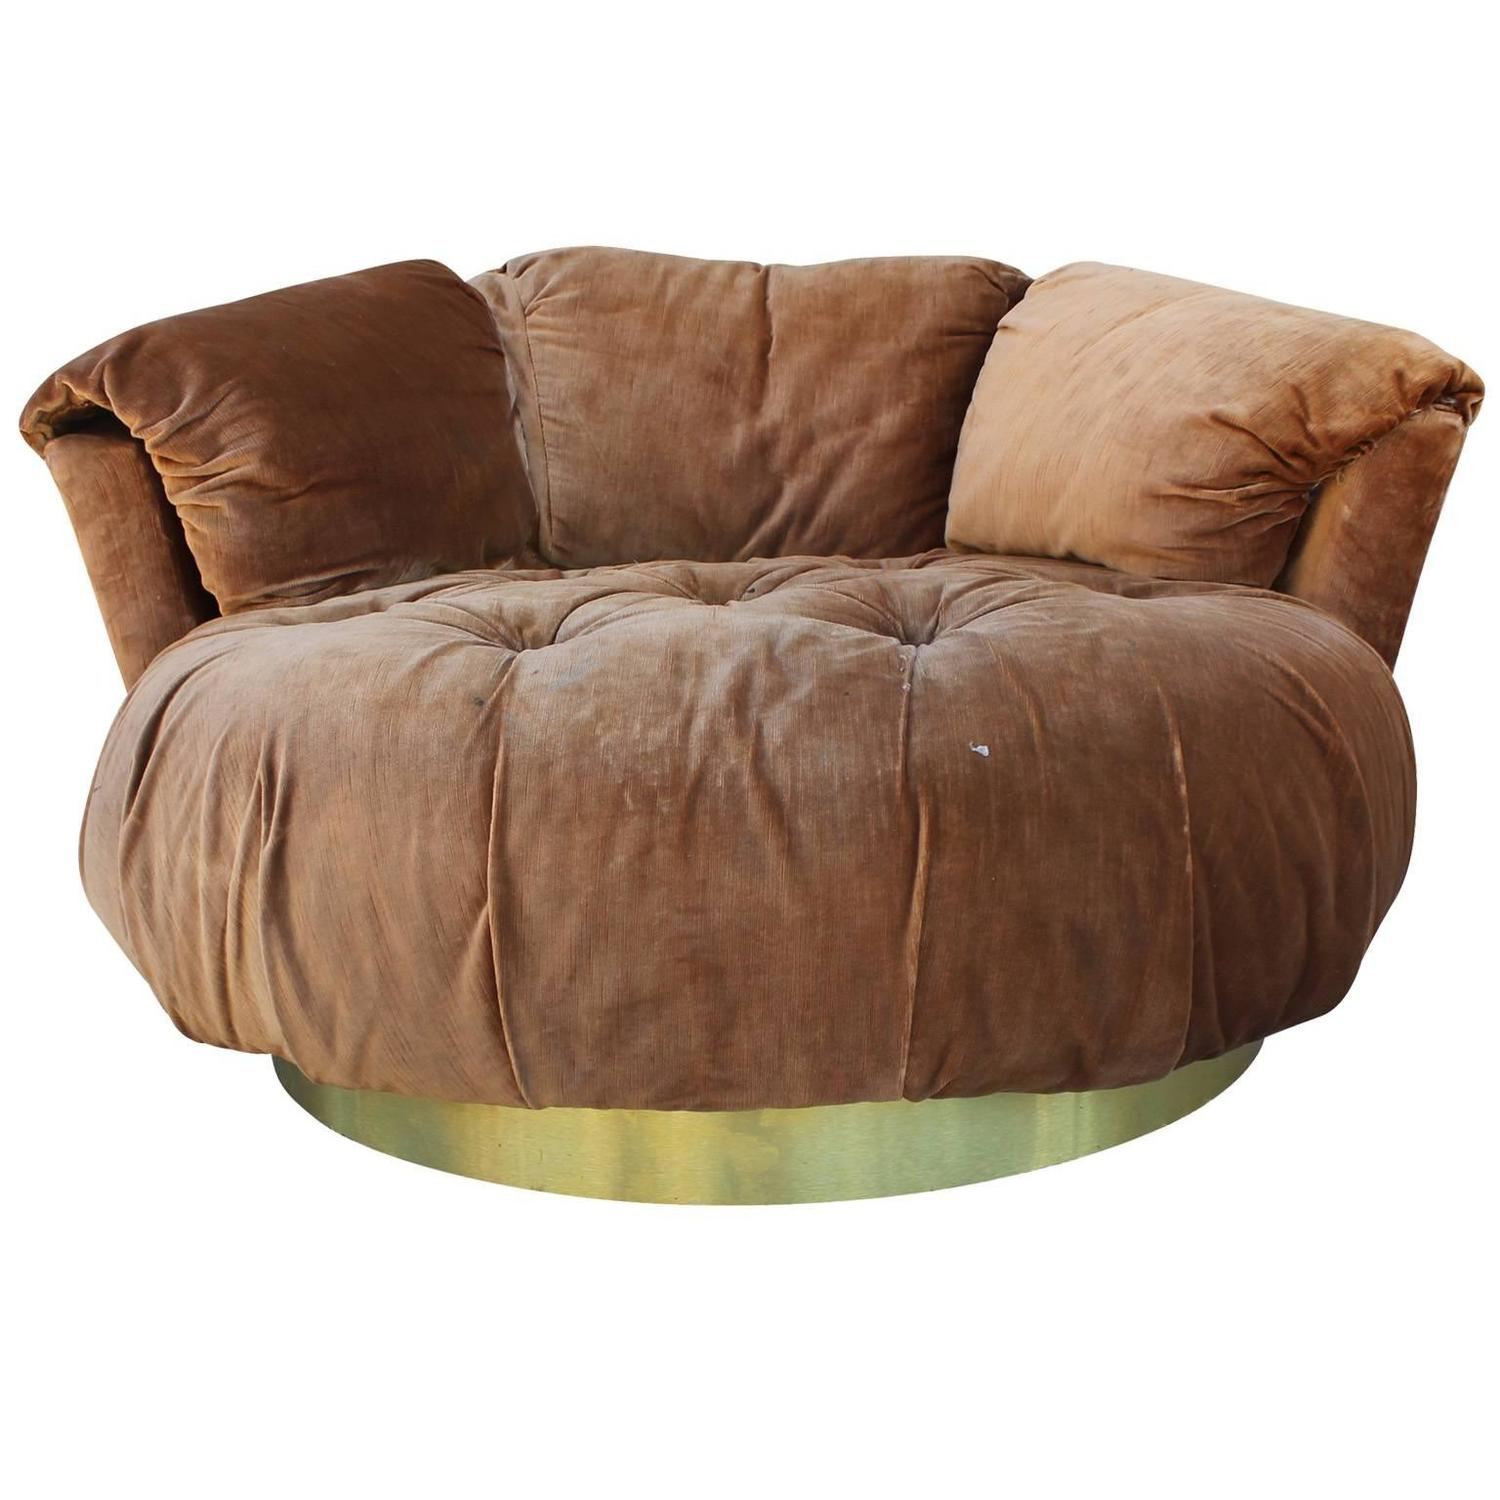 round base chair wheelchair van service plush tufted circle lounge with brass at 1stdibs